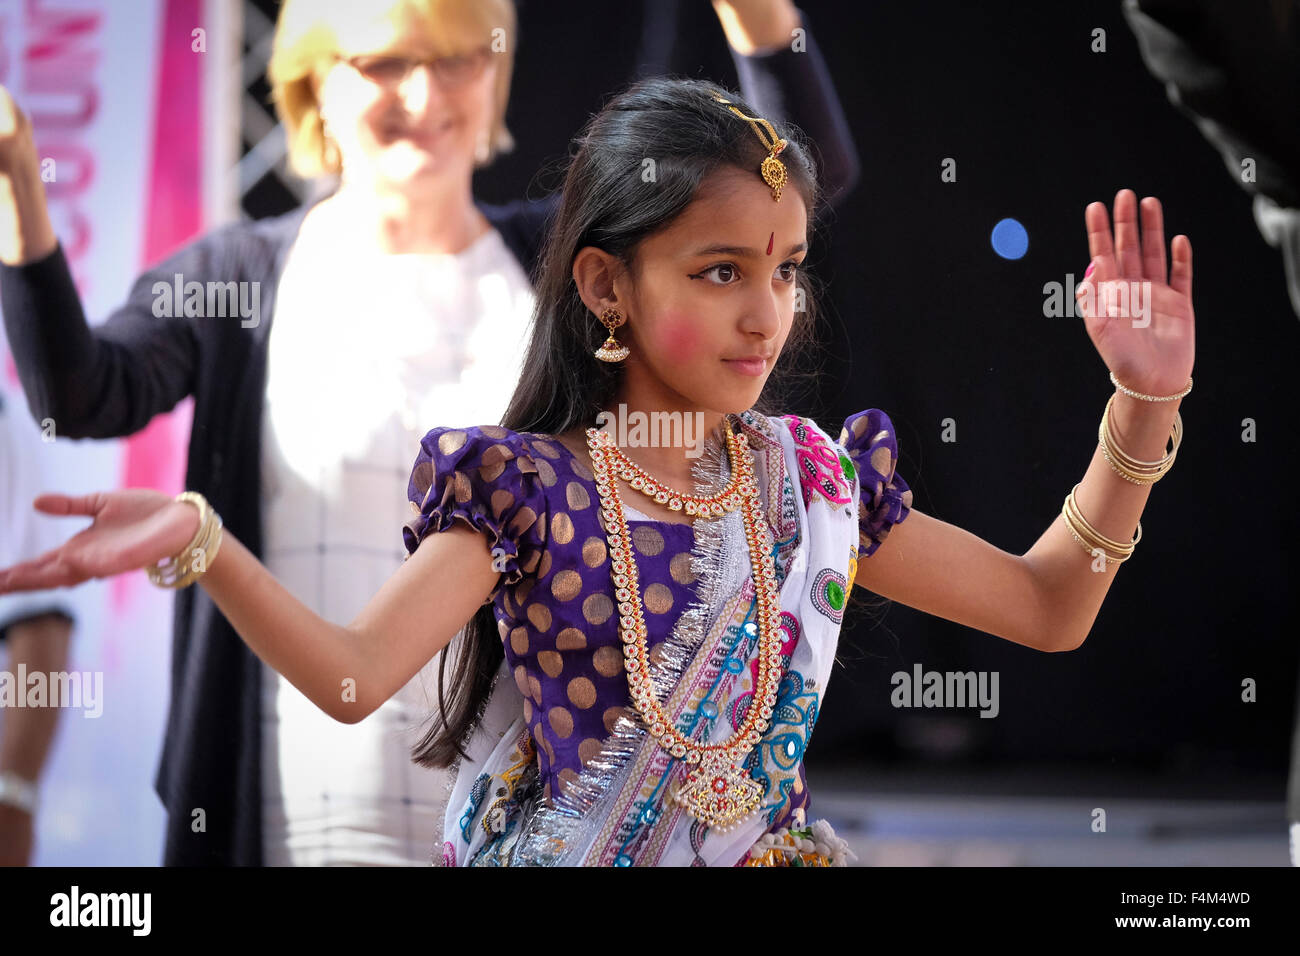 Young Indian girl in traditional Indian costume dancing - Stock Image